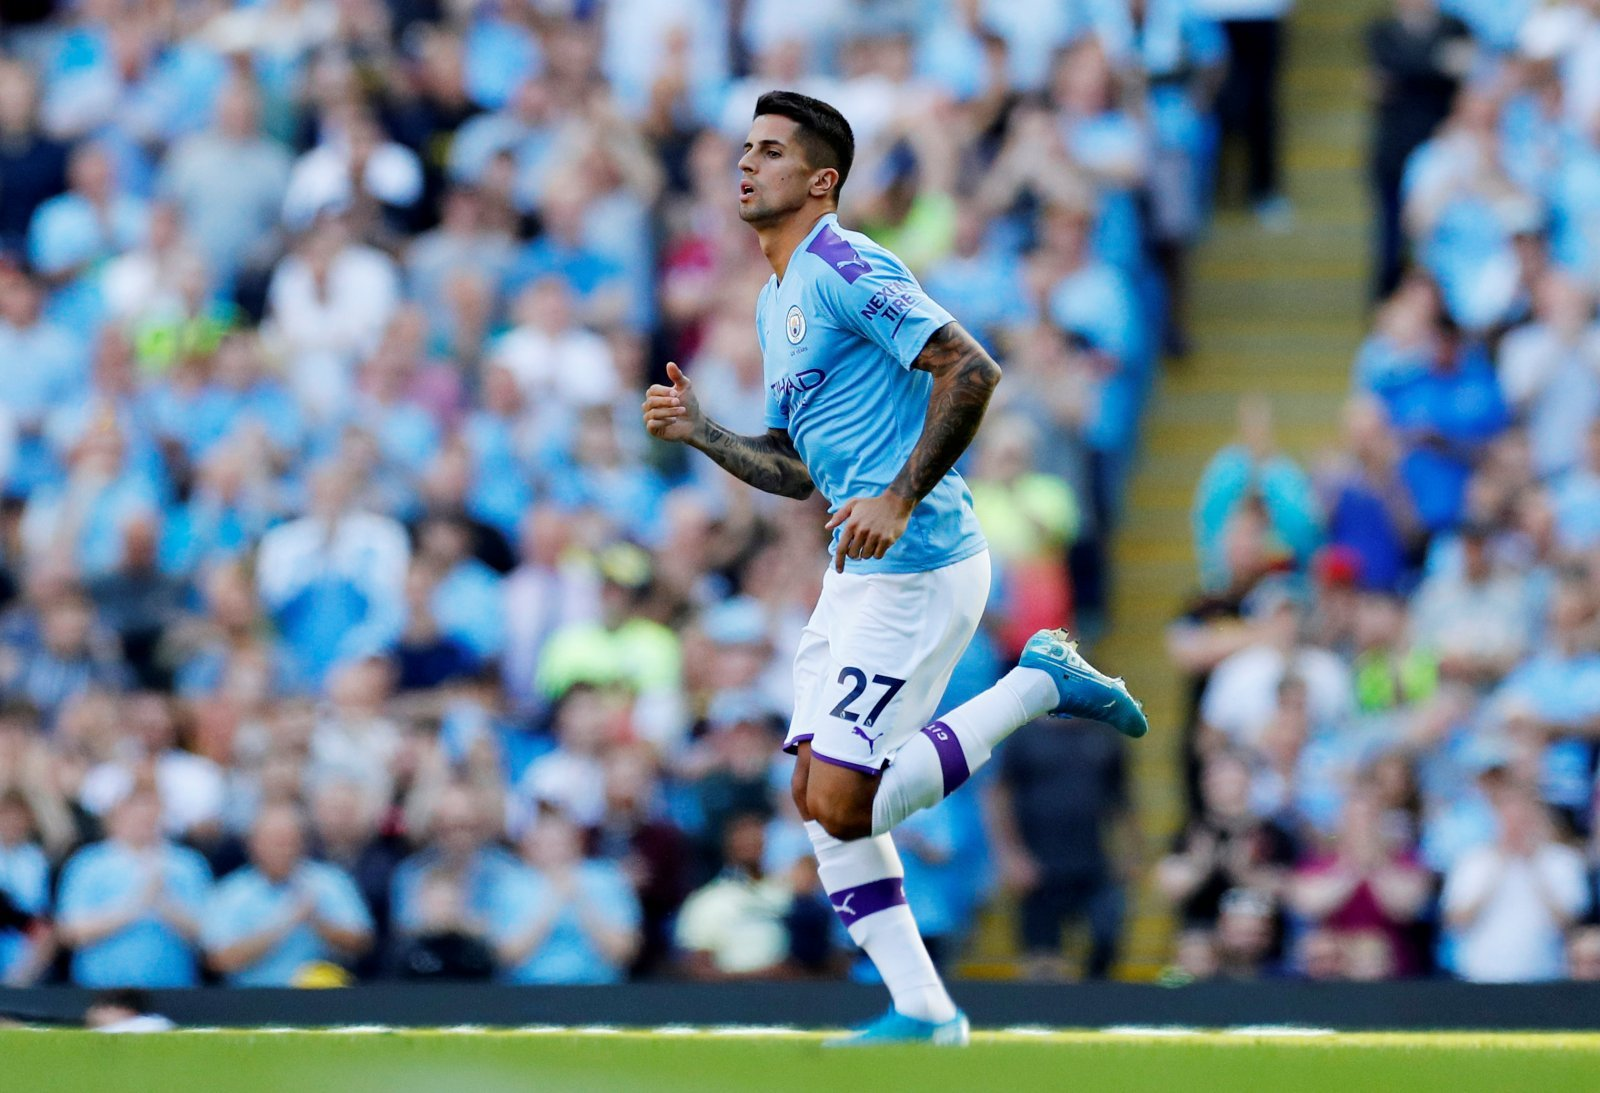 Manchester City: Many fans think Joao Cancelo should be starting